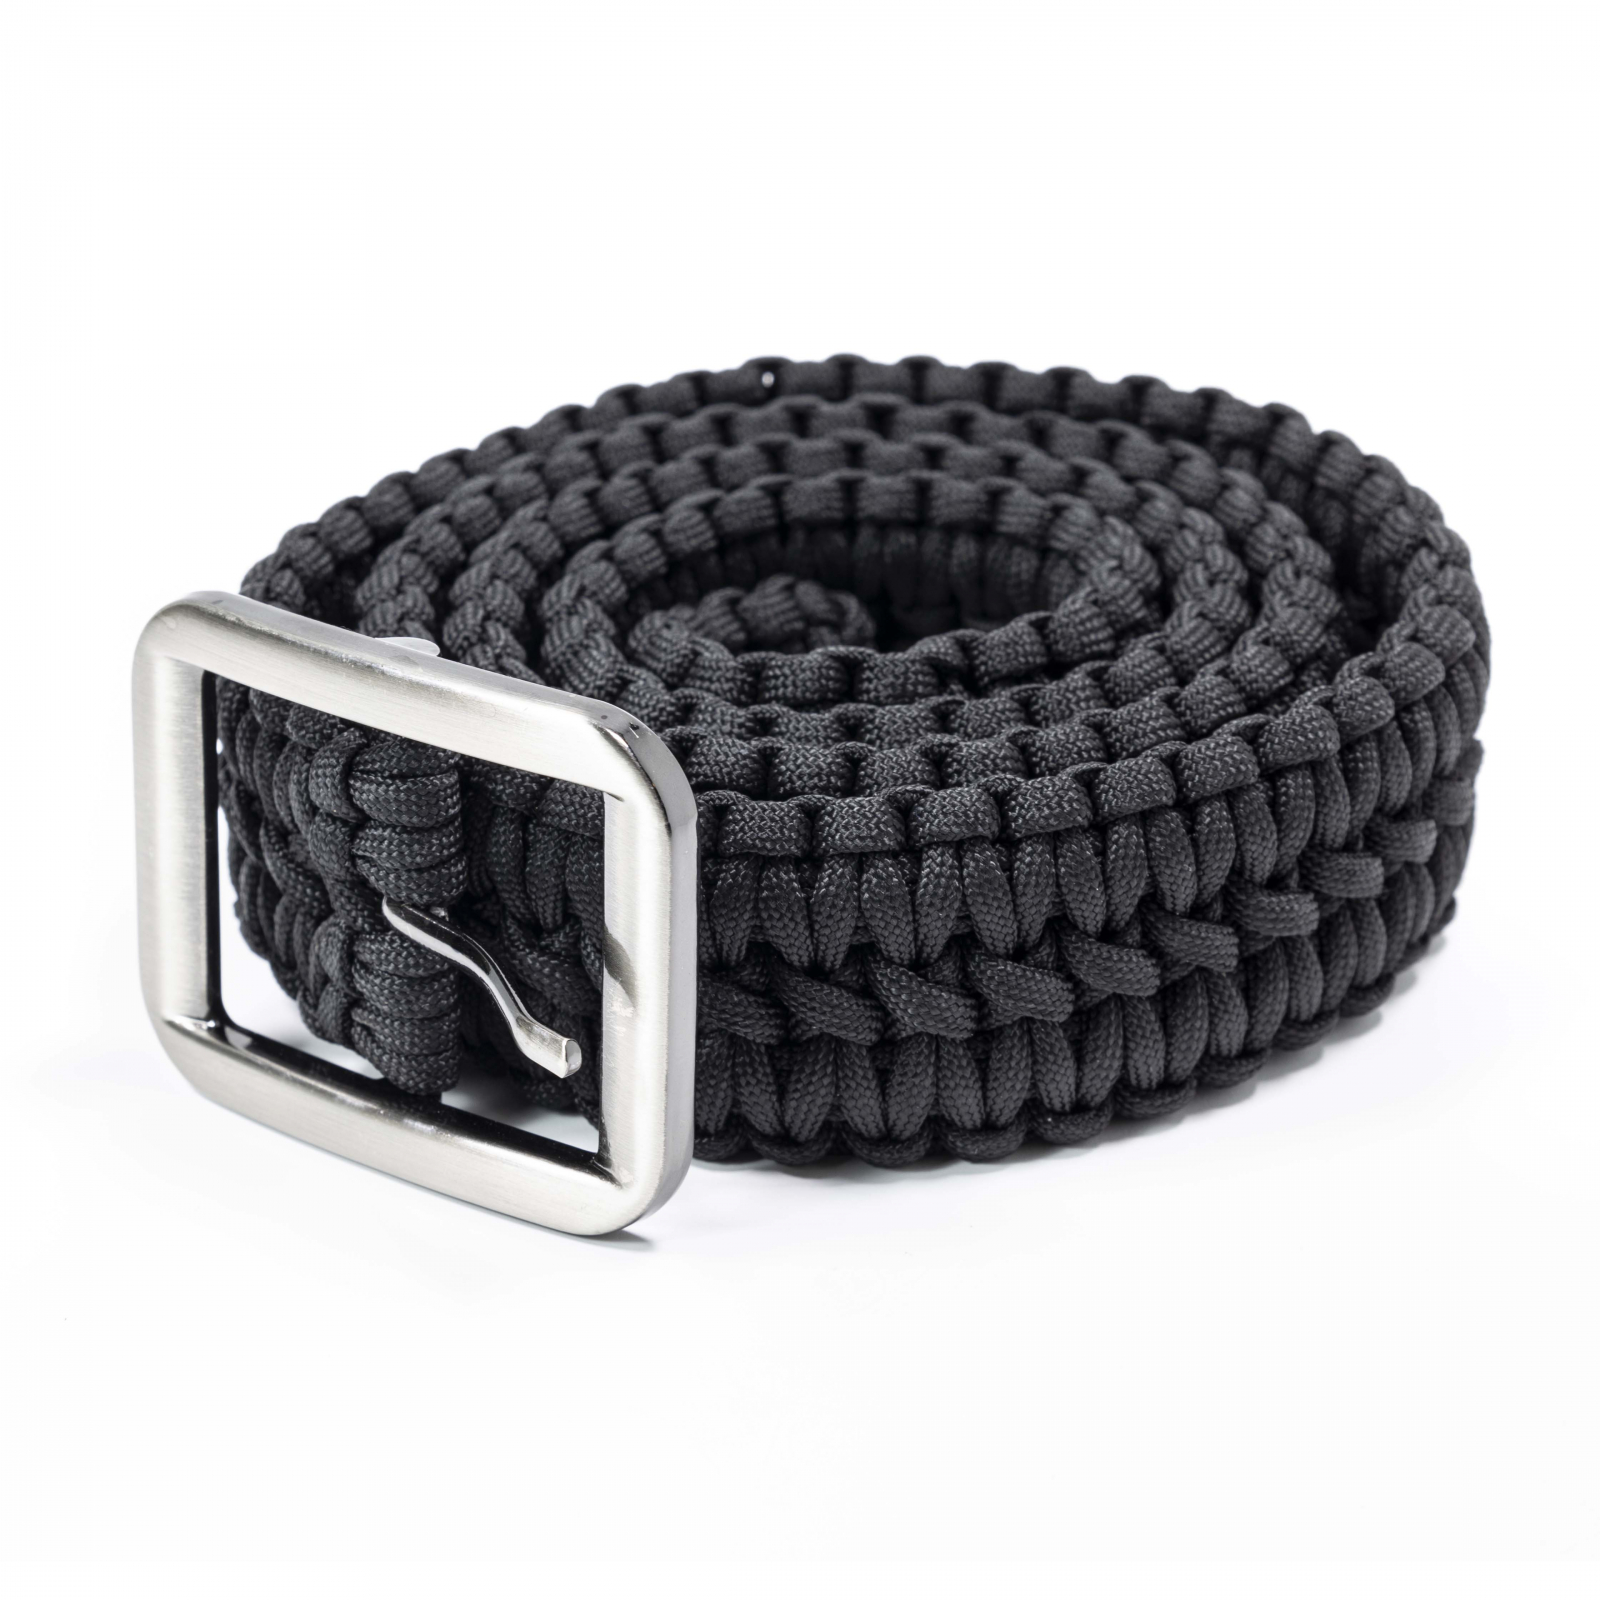 52in ASR Outdoor Milspec 550 Paracord Belt with Stainless Steel Buckle Survival